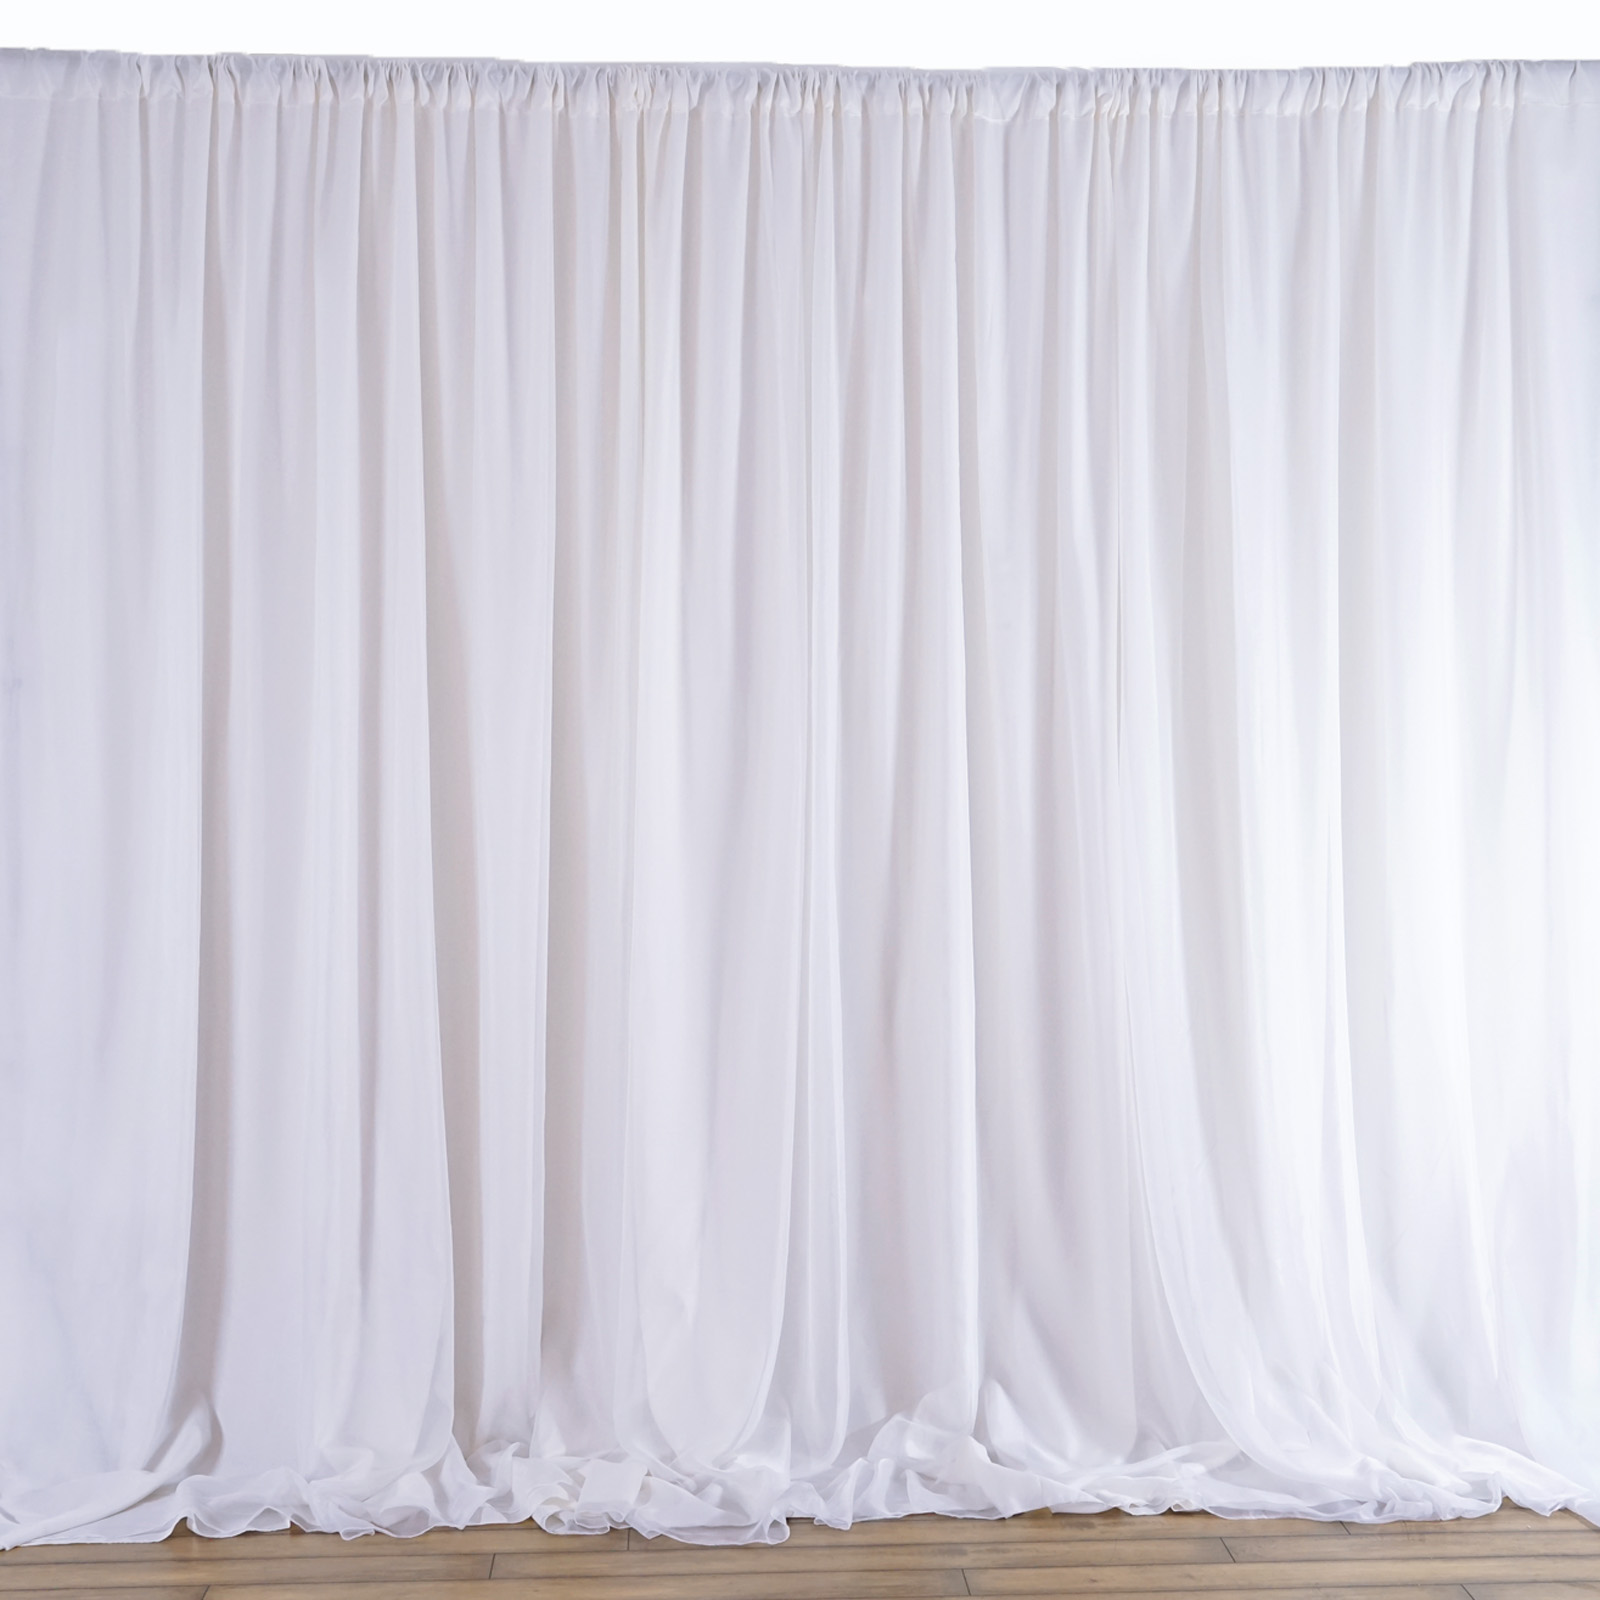 20 Ft X 10 Ft White Fabric Backdrop Wedding Party